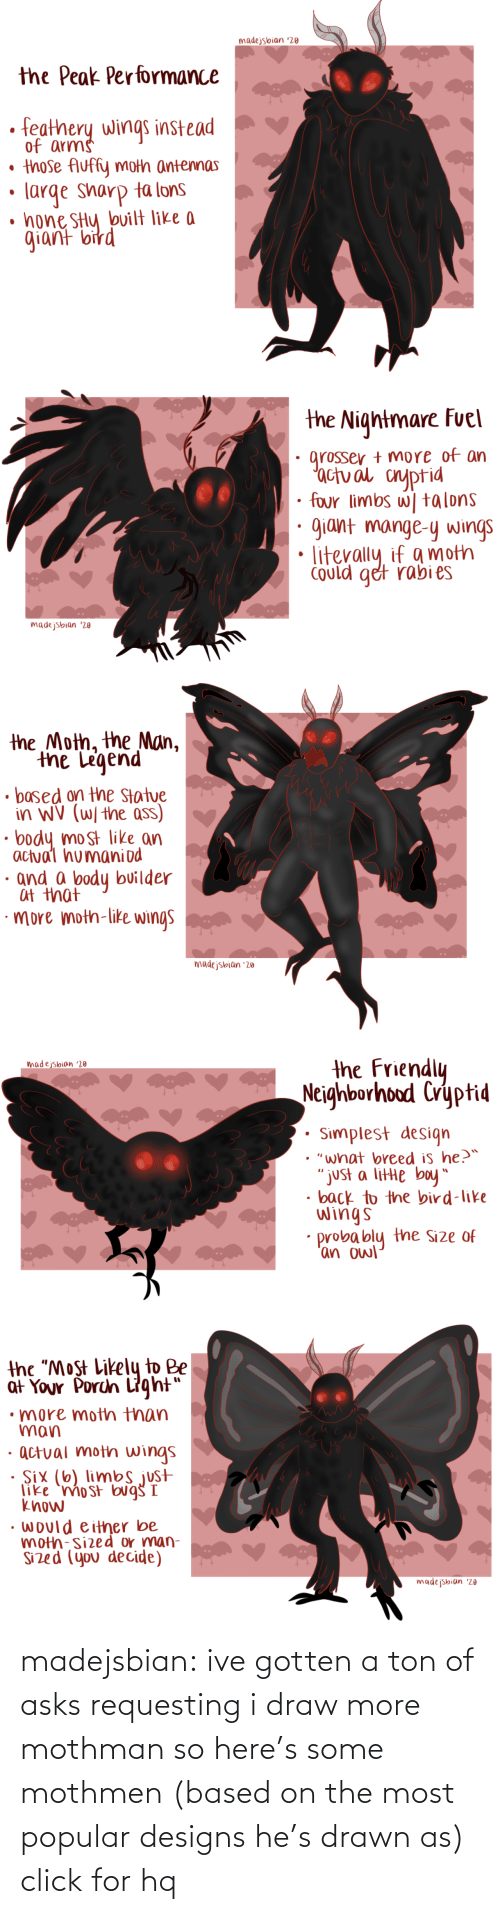 "ton: madejsbian '20  the Peak Performance  feathery wings instead  of arms  • those Auffy moth antennas  large sharp ta lons  • hone SHy bvilt like a  giant bird   the Nightmare Fuel  grosser + more of an  'actual cnyptid  four limbs w| talons  giant mange-y wings  Could get rabi es  madejsbian '20   the Moth, the Man,  the Legend  • based on the Statue  in WV (W/ the ass)  body most like an  actual humaniod  · and a body builder  at that  ·more moth-like wings  madejsbian '20   the Friendly  Neighborhood Cryptid  madejsbian '20  Simplest design  • ""what breed is he?™  ""just a litte boy""  • back to the bird-like  wings  probably the Size of  'an owl   the ""Most Likely to Be  at Your Porch Light""  •more moth than  man  · actual moth wings  · Six (6) limbs just  like 'mo st bug I  know  • would either be  moth-sized or man-  Sized (you decide)  madejsbian '20 madejsbian: ive gotten a ton of asks requesting i draw more mothman so here's some mothmen (based on the most popular designs he's drawn as)